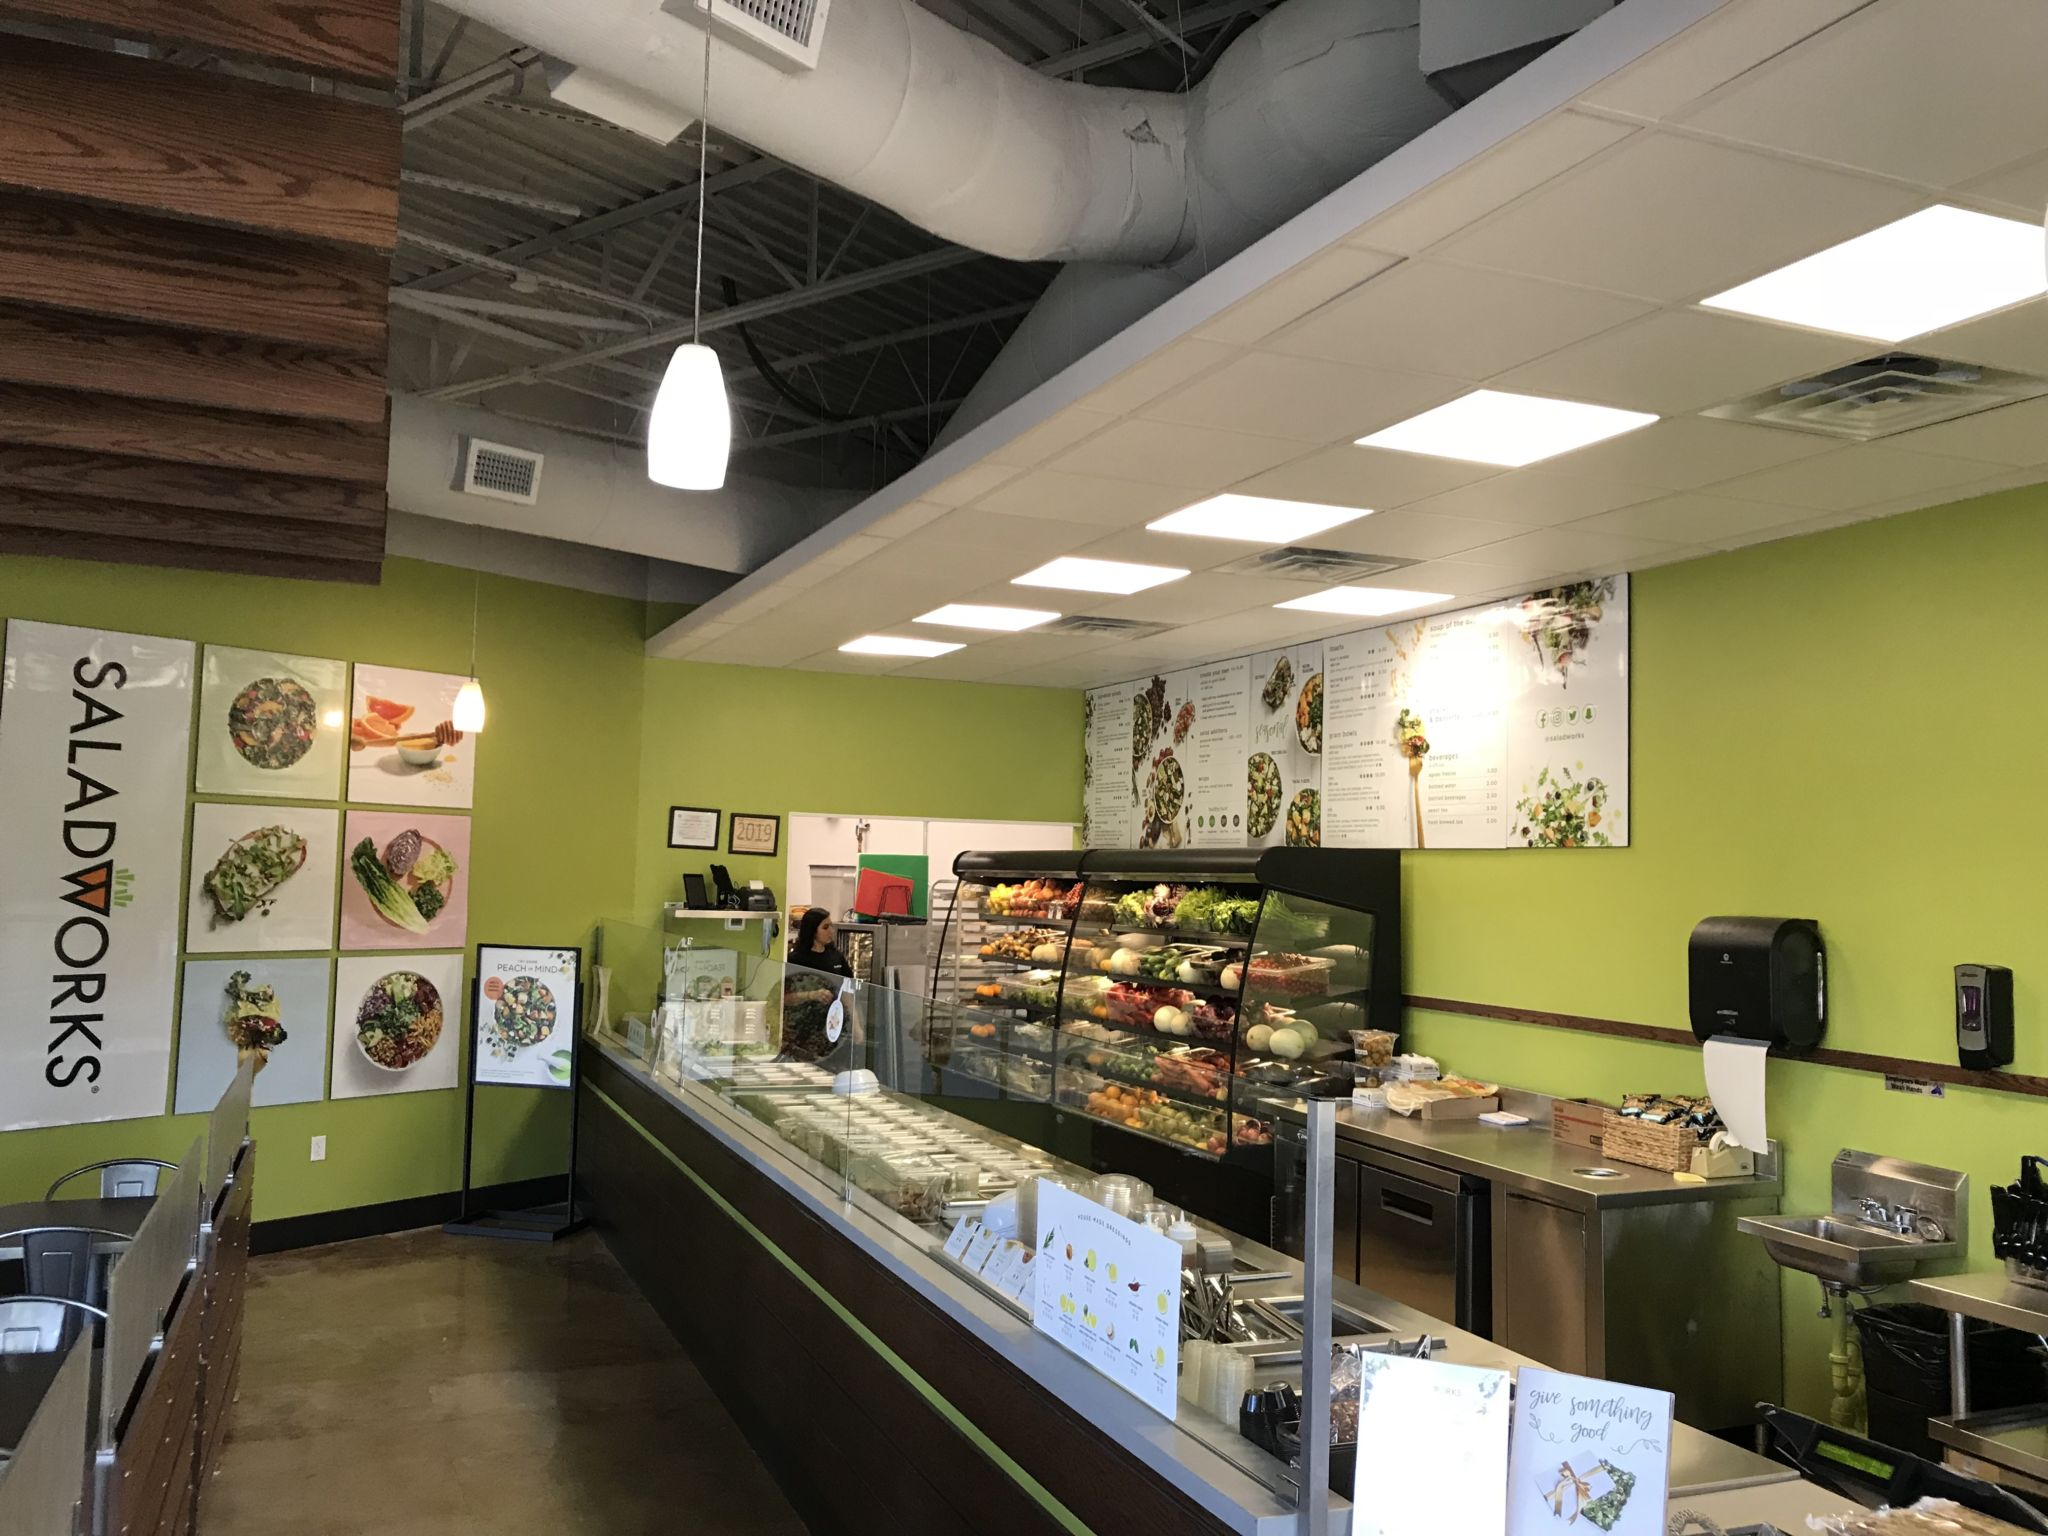 Atlanta's First Saladworks To Open in Brighten Park Shopping Center July 25 - What Now Atlanta